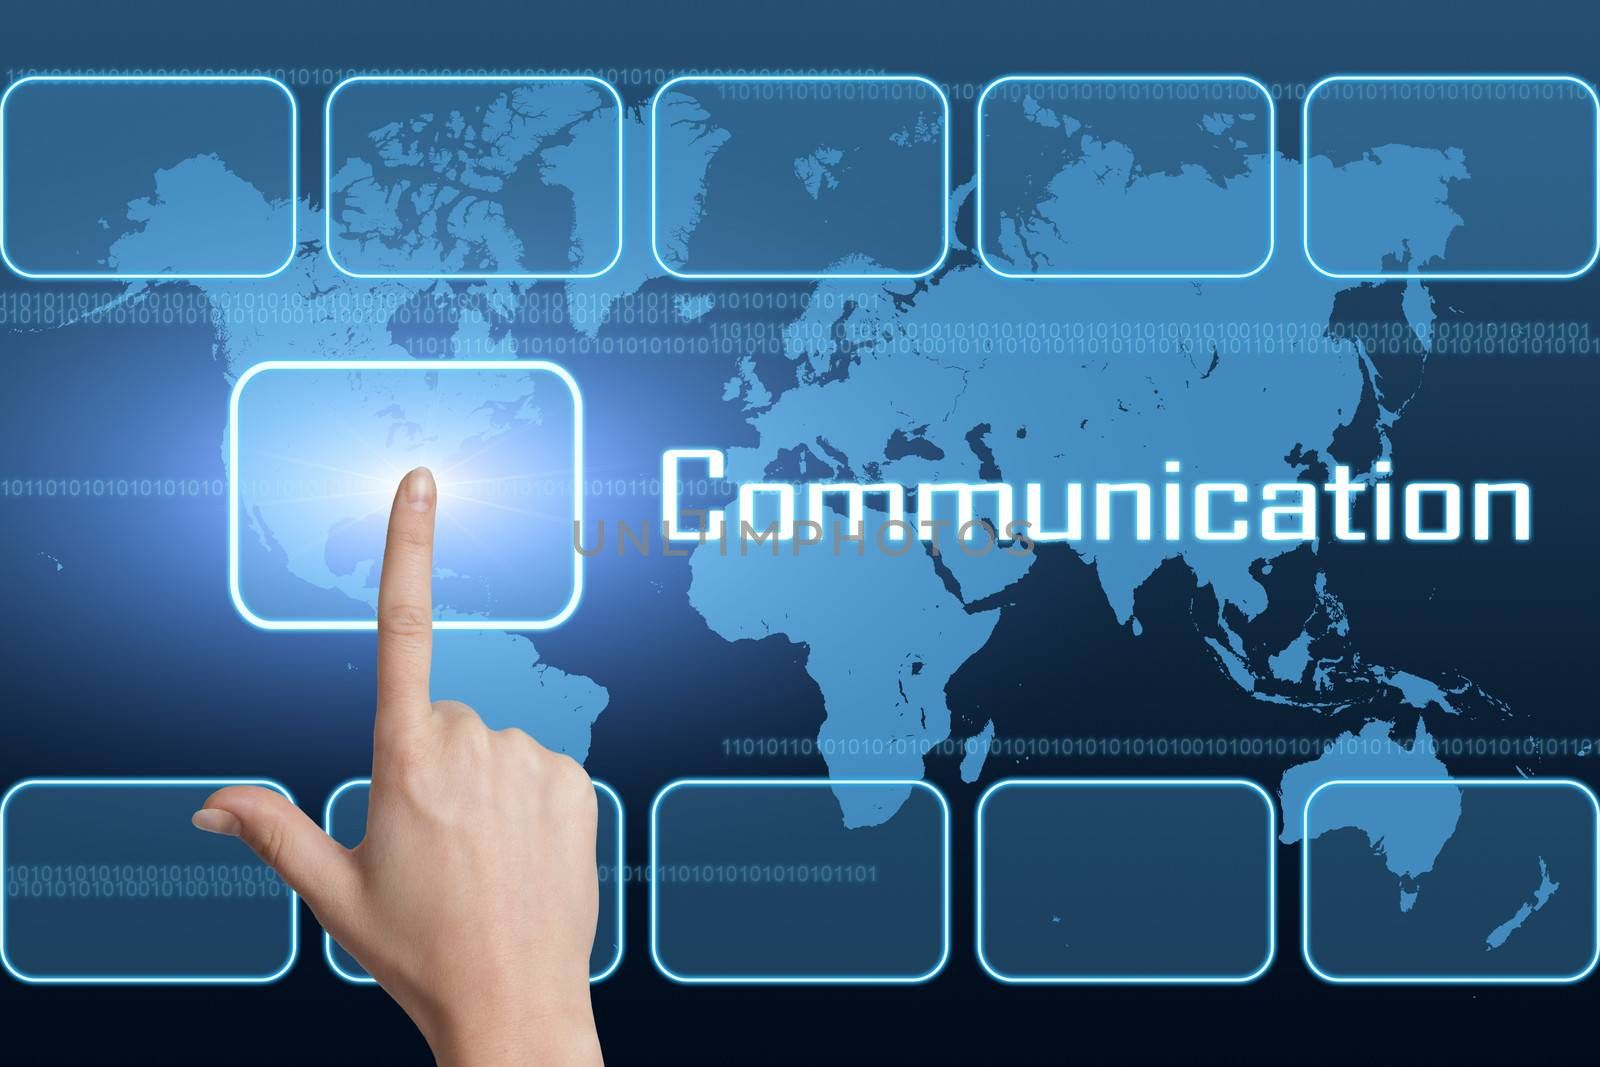 Communication concept with interface and world map on blue background